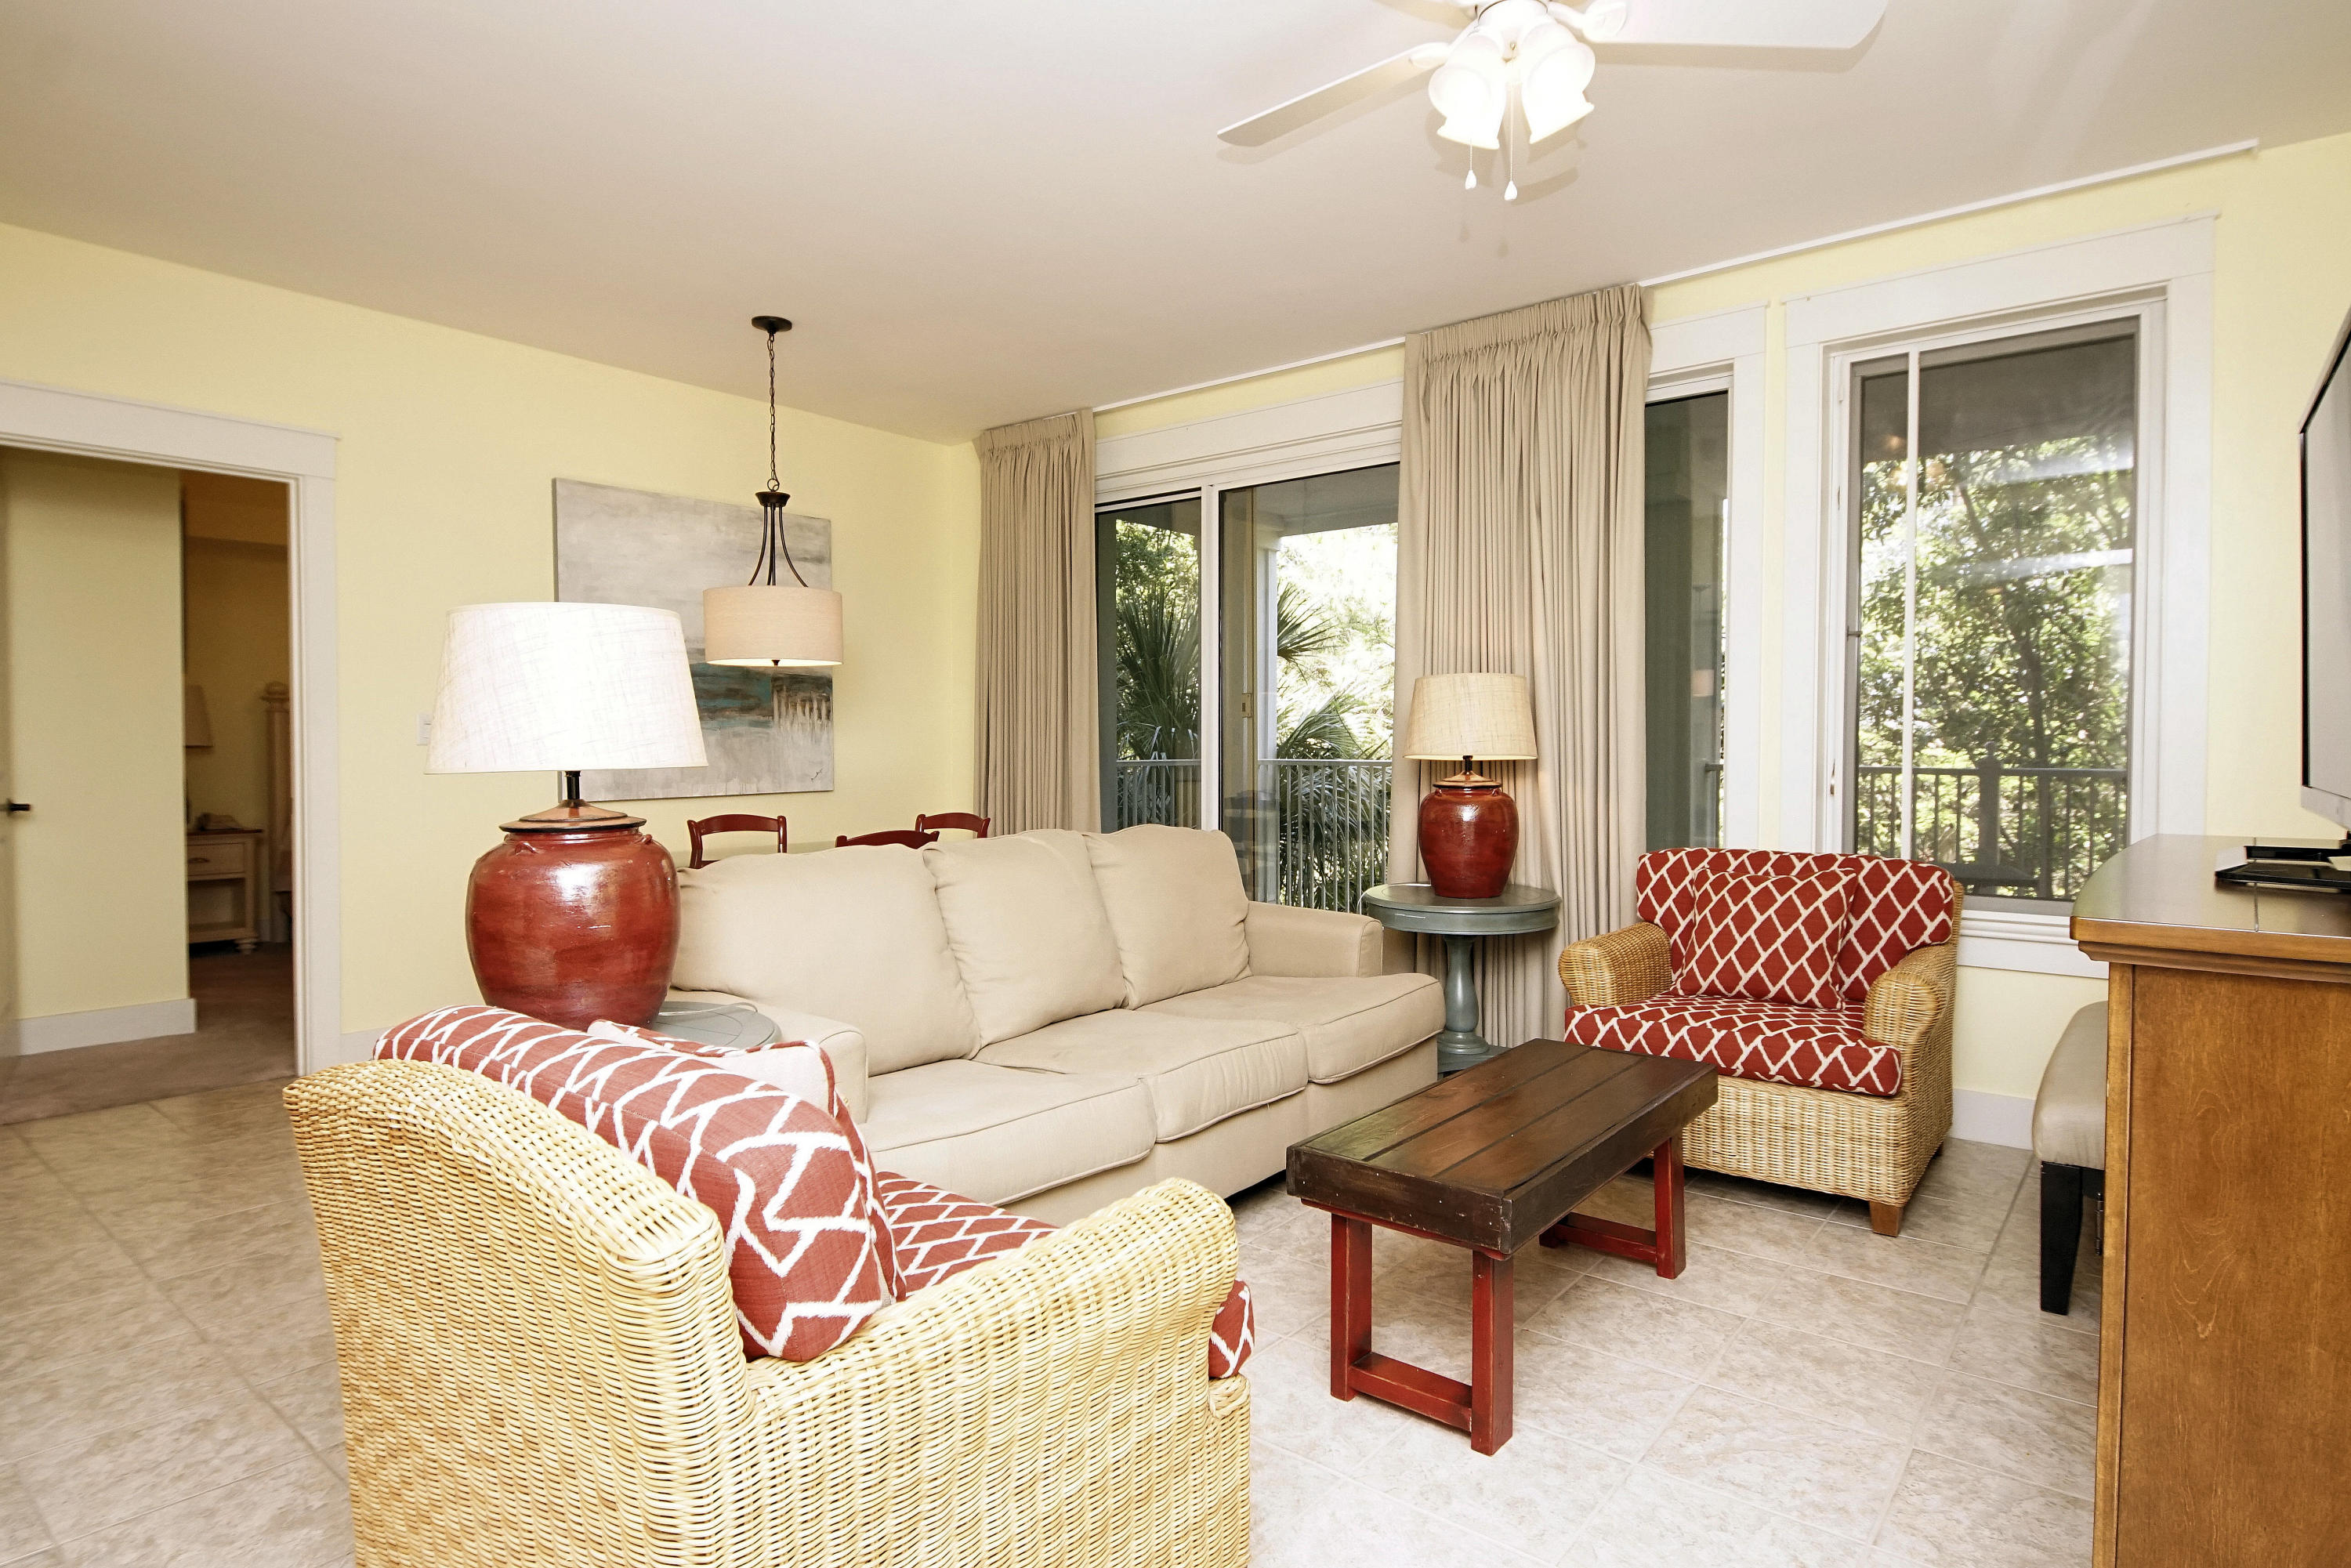 """Fabulous location, close to shops and restaurants of the Village of Baytowne Wharf, located on amenity terrace level featuring resort style pool, garden area, hot tub, grills and fitness room.  Furnished (including sleeper sofa) 2-bedroom lockoff - Great investment opportunity as studio, 1 bdrm or 2 bdrm unit.  2018 combined rental history $44,879 and 2017: $34,599 on Sandestin Rental Mngt.Relax on the spacious deck overlooking mature trees and well-manicured grounds.As an introduction to the Sandestin lifestyle, we invite our new owners to explore amenities that make Sandestin special. The listing brokerage and seller(s) are presenting the buyer(s) of this property with (2) 90-minute rounds of Tennis court time, a golf foursome at one of our three championship courses, a round of golf for up to four (4) players and an invitation to """"Club Night"""" at the unrivaled Burnt Pine Golf Club.   Sandestin Golf and Beach Resort is a major destination for all seasons and all ages, has been named the #1 resort on Florida's Emerald Coast.  This magical resort spanning over 2000 acres is comprised of over 70 unique neighborhoods of condominiums, villas, town homes, and estates. The resort features miles of sandy white beaches and pristine bay front, four championship golf courses, a world-class tennis center with 15 courts, 4 resort swimming pools (and 15 private neighborhood pools), a 113-slip marina, a fully equipped and professionally staffed fitness center and spa, meeting spaces and The Village of Baytowne Wharf, a charming pedestrian village with events, shopping, dining, family entertainment and nightlife. For true golf cart community living, Grand Boulevard is just outside the resort gates and provides access to additional shopping, dining and entertainment - all without traveling on Hwy. 98. Come to Play, Stay for Life!"""